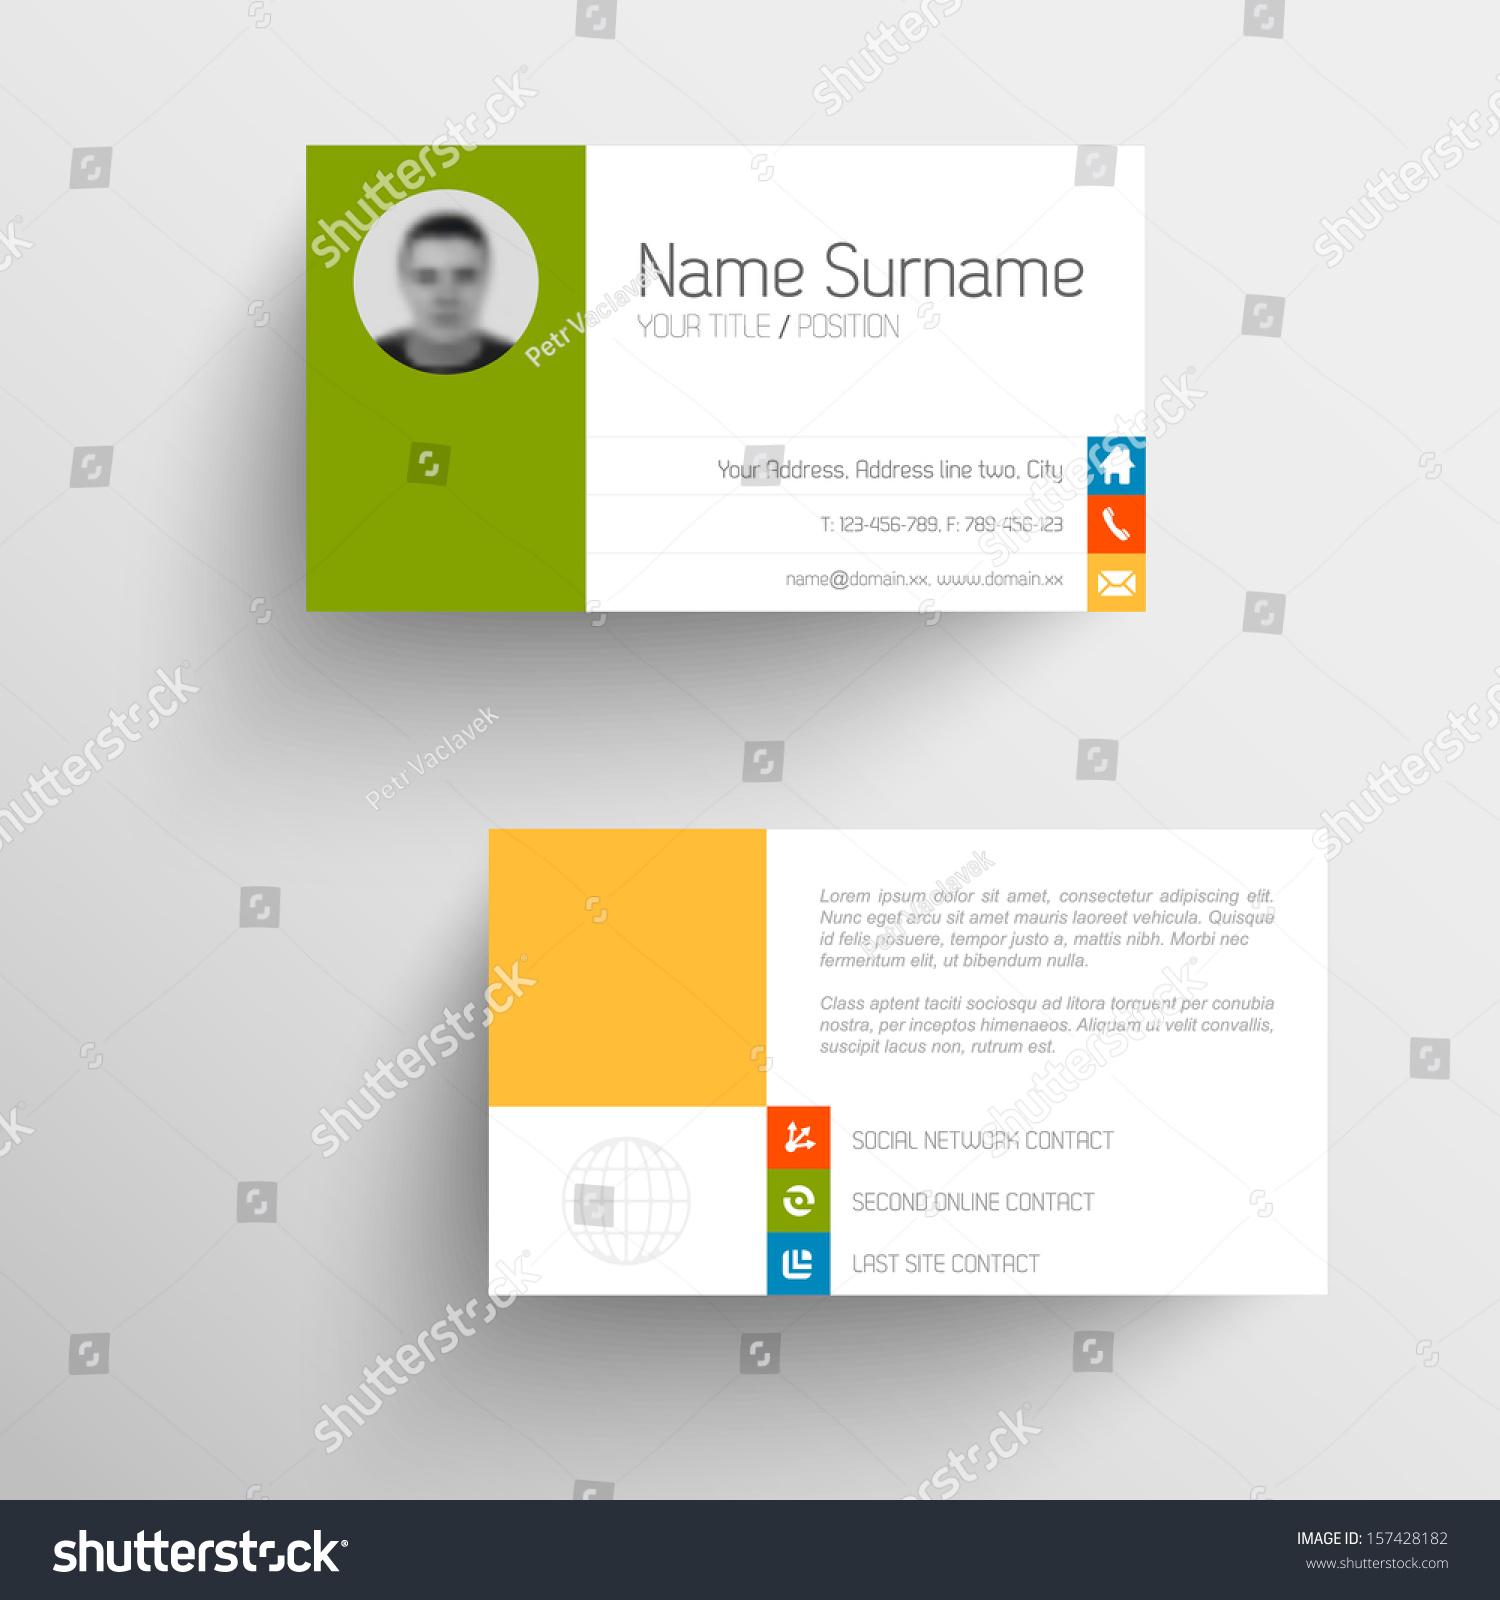 modern simple light business card template stock vector 157428182 modern simple light business card template flat user interface